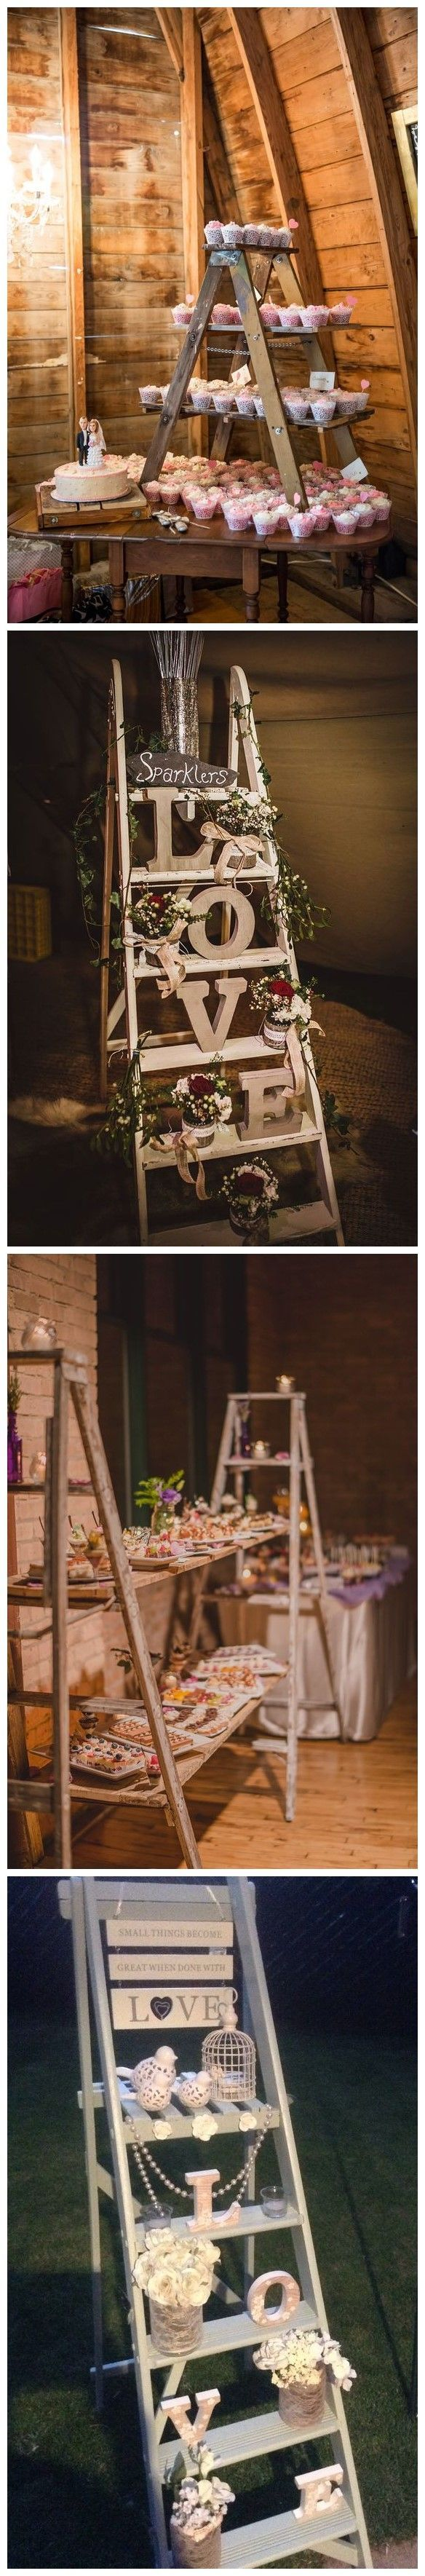 Country Weddings : 22 Rustic Country Wedding Decoration Ideas with Ladders